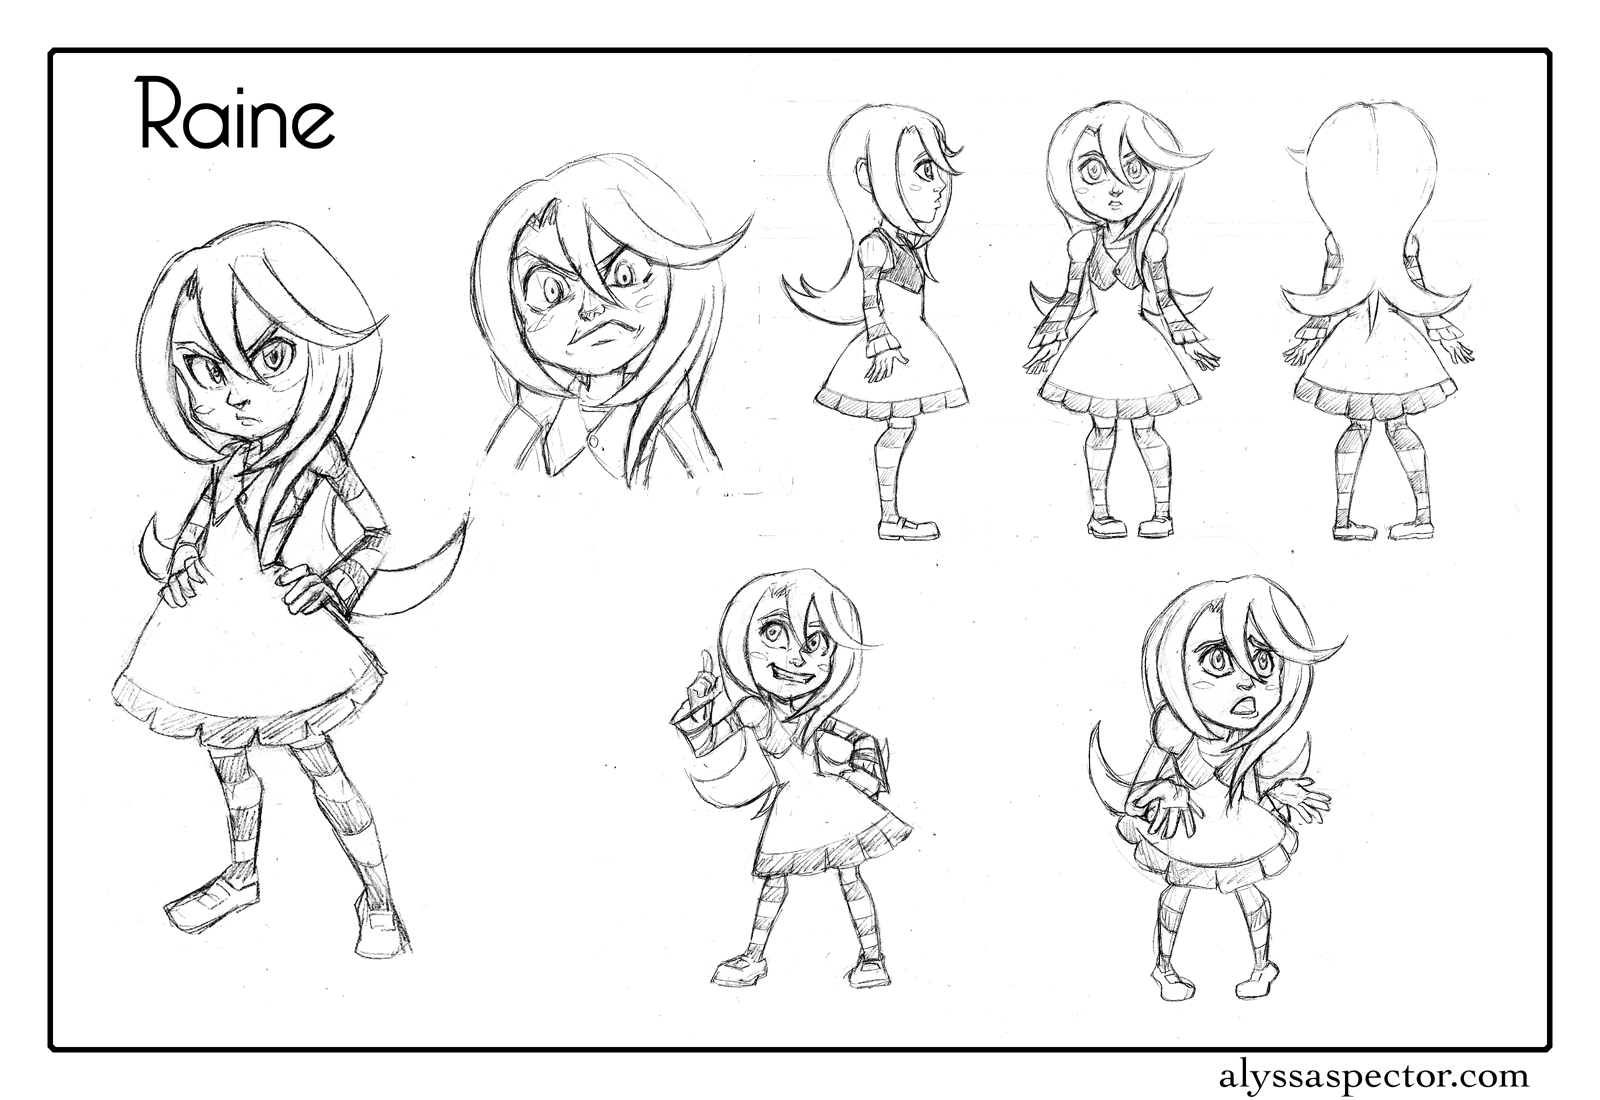 Character Design Outline : Alyssa spector s art character designs